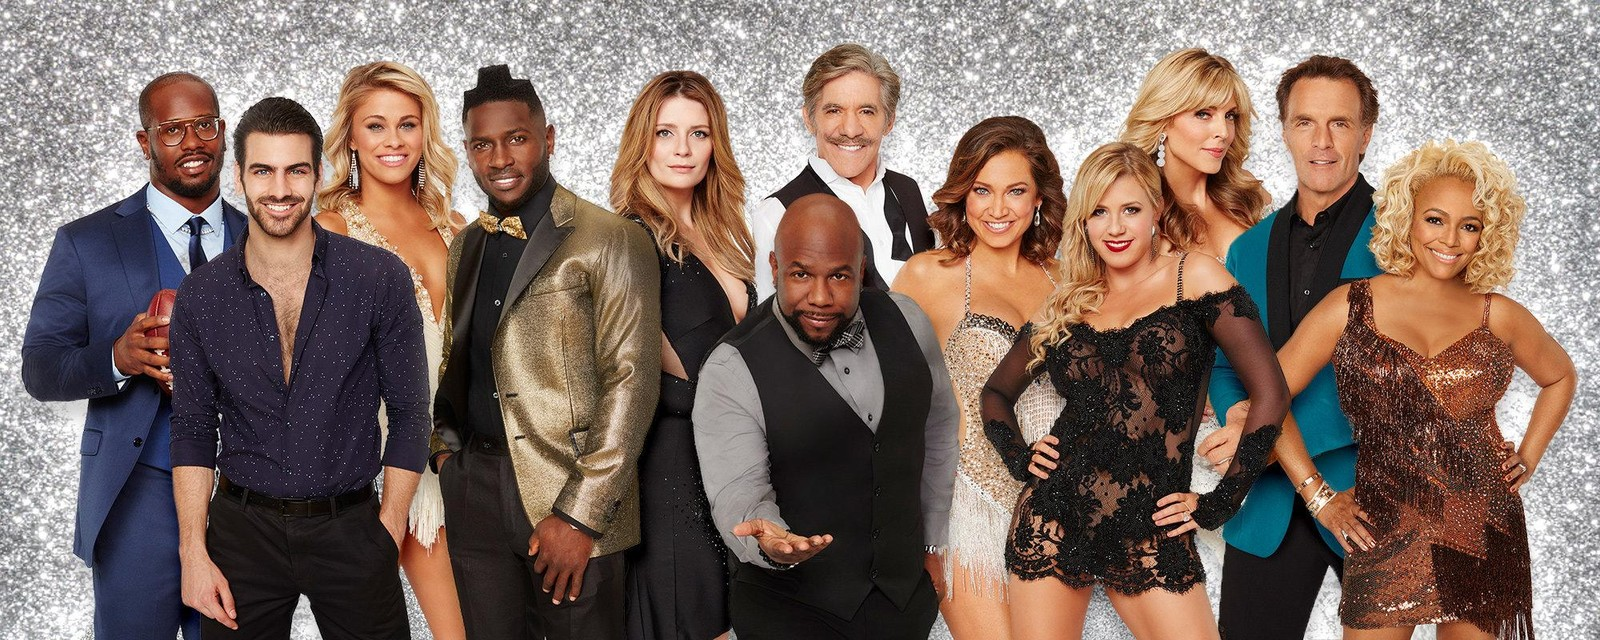 Dancing with the Stars, Cast, Characters and Stars